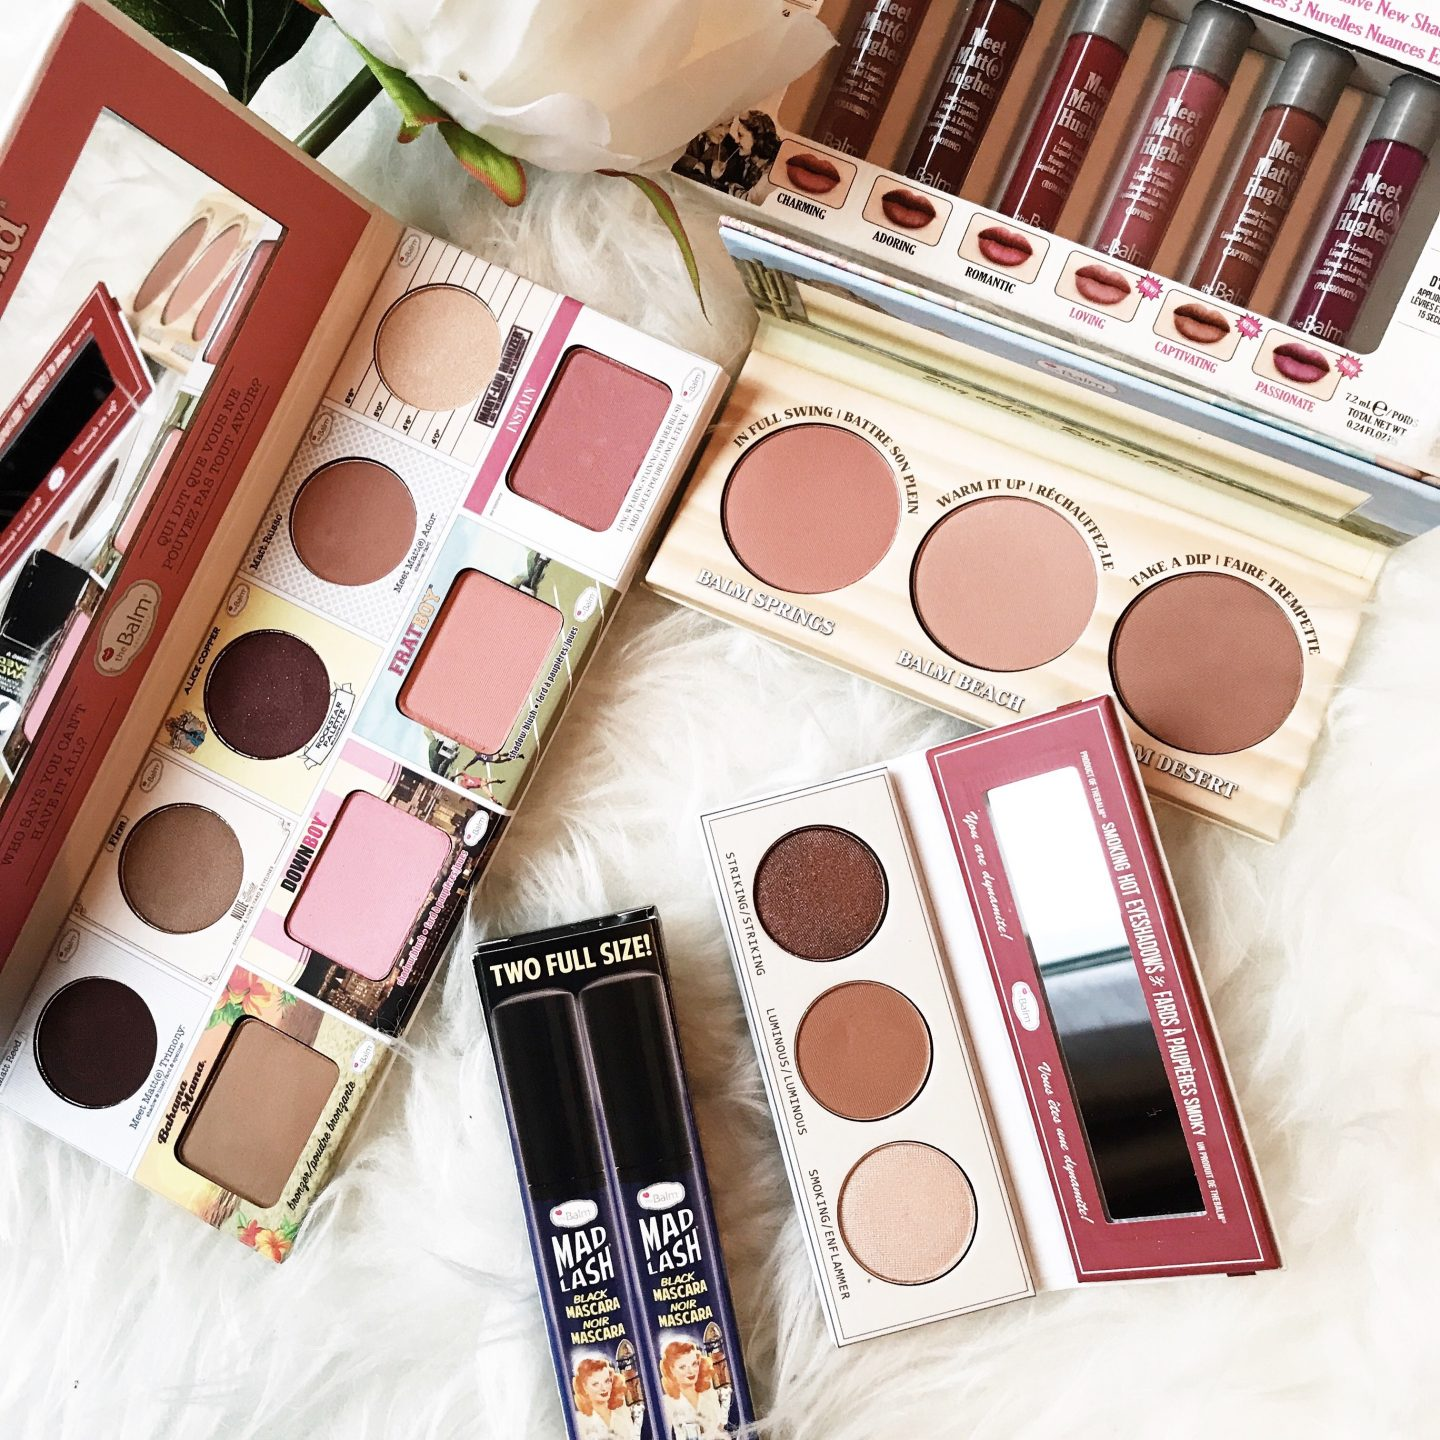 thebalm holiday1.jpg